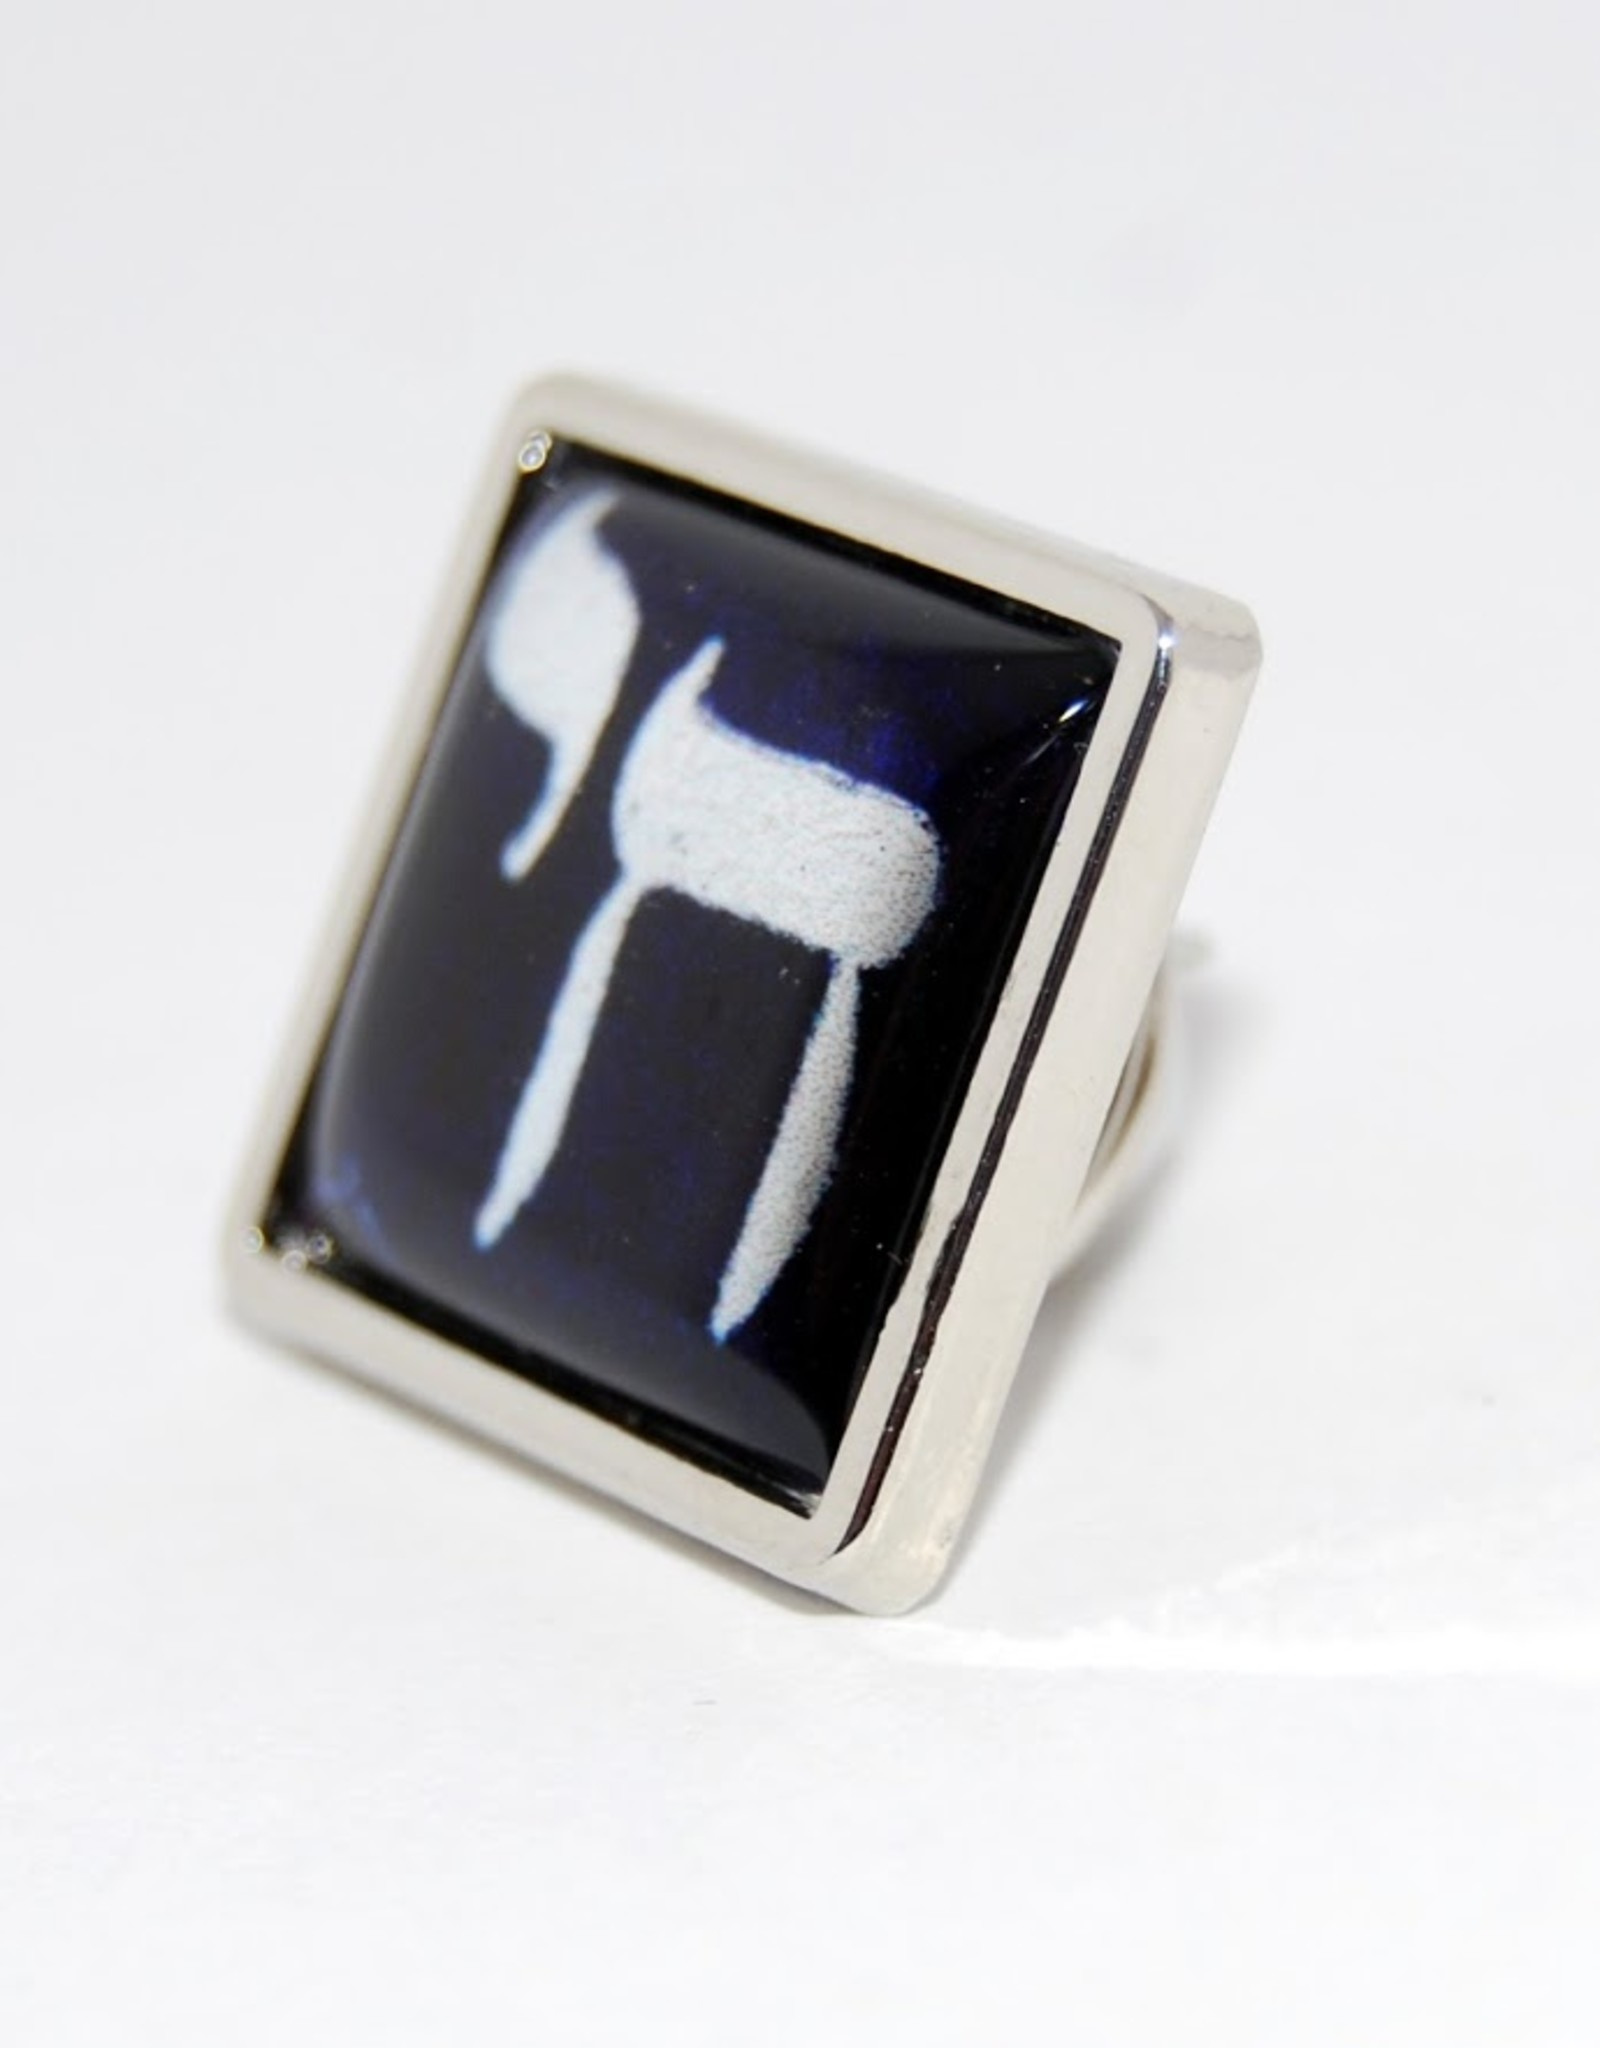 Chaipainter Chai Pin brooch  in Israeli blue and white colors.